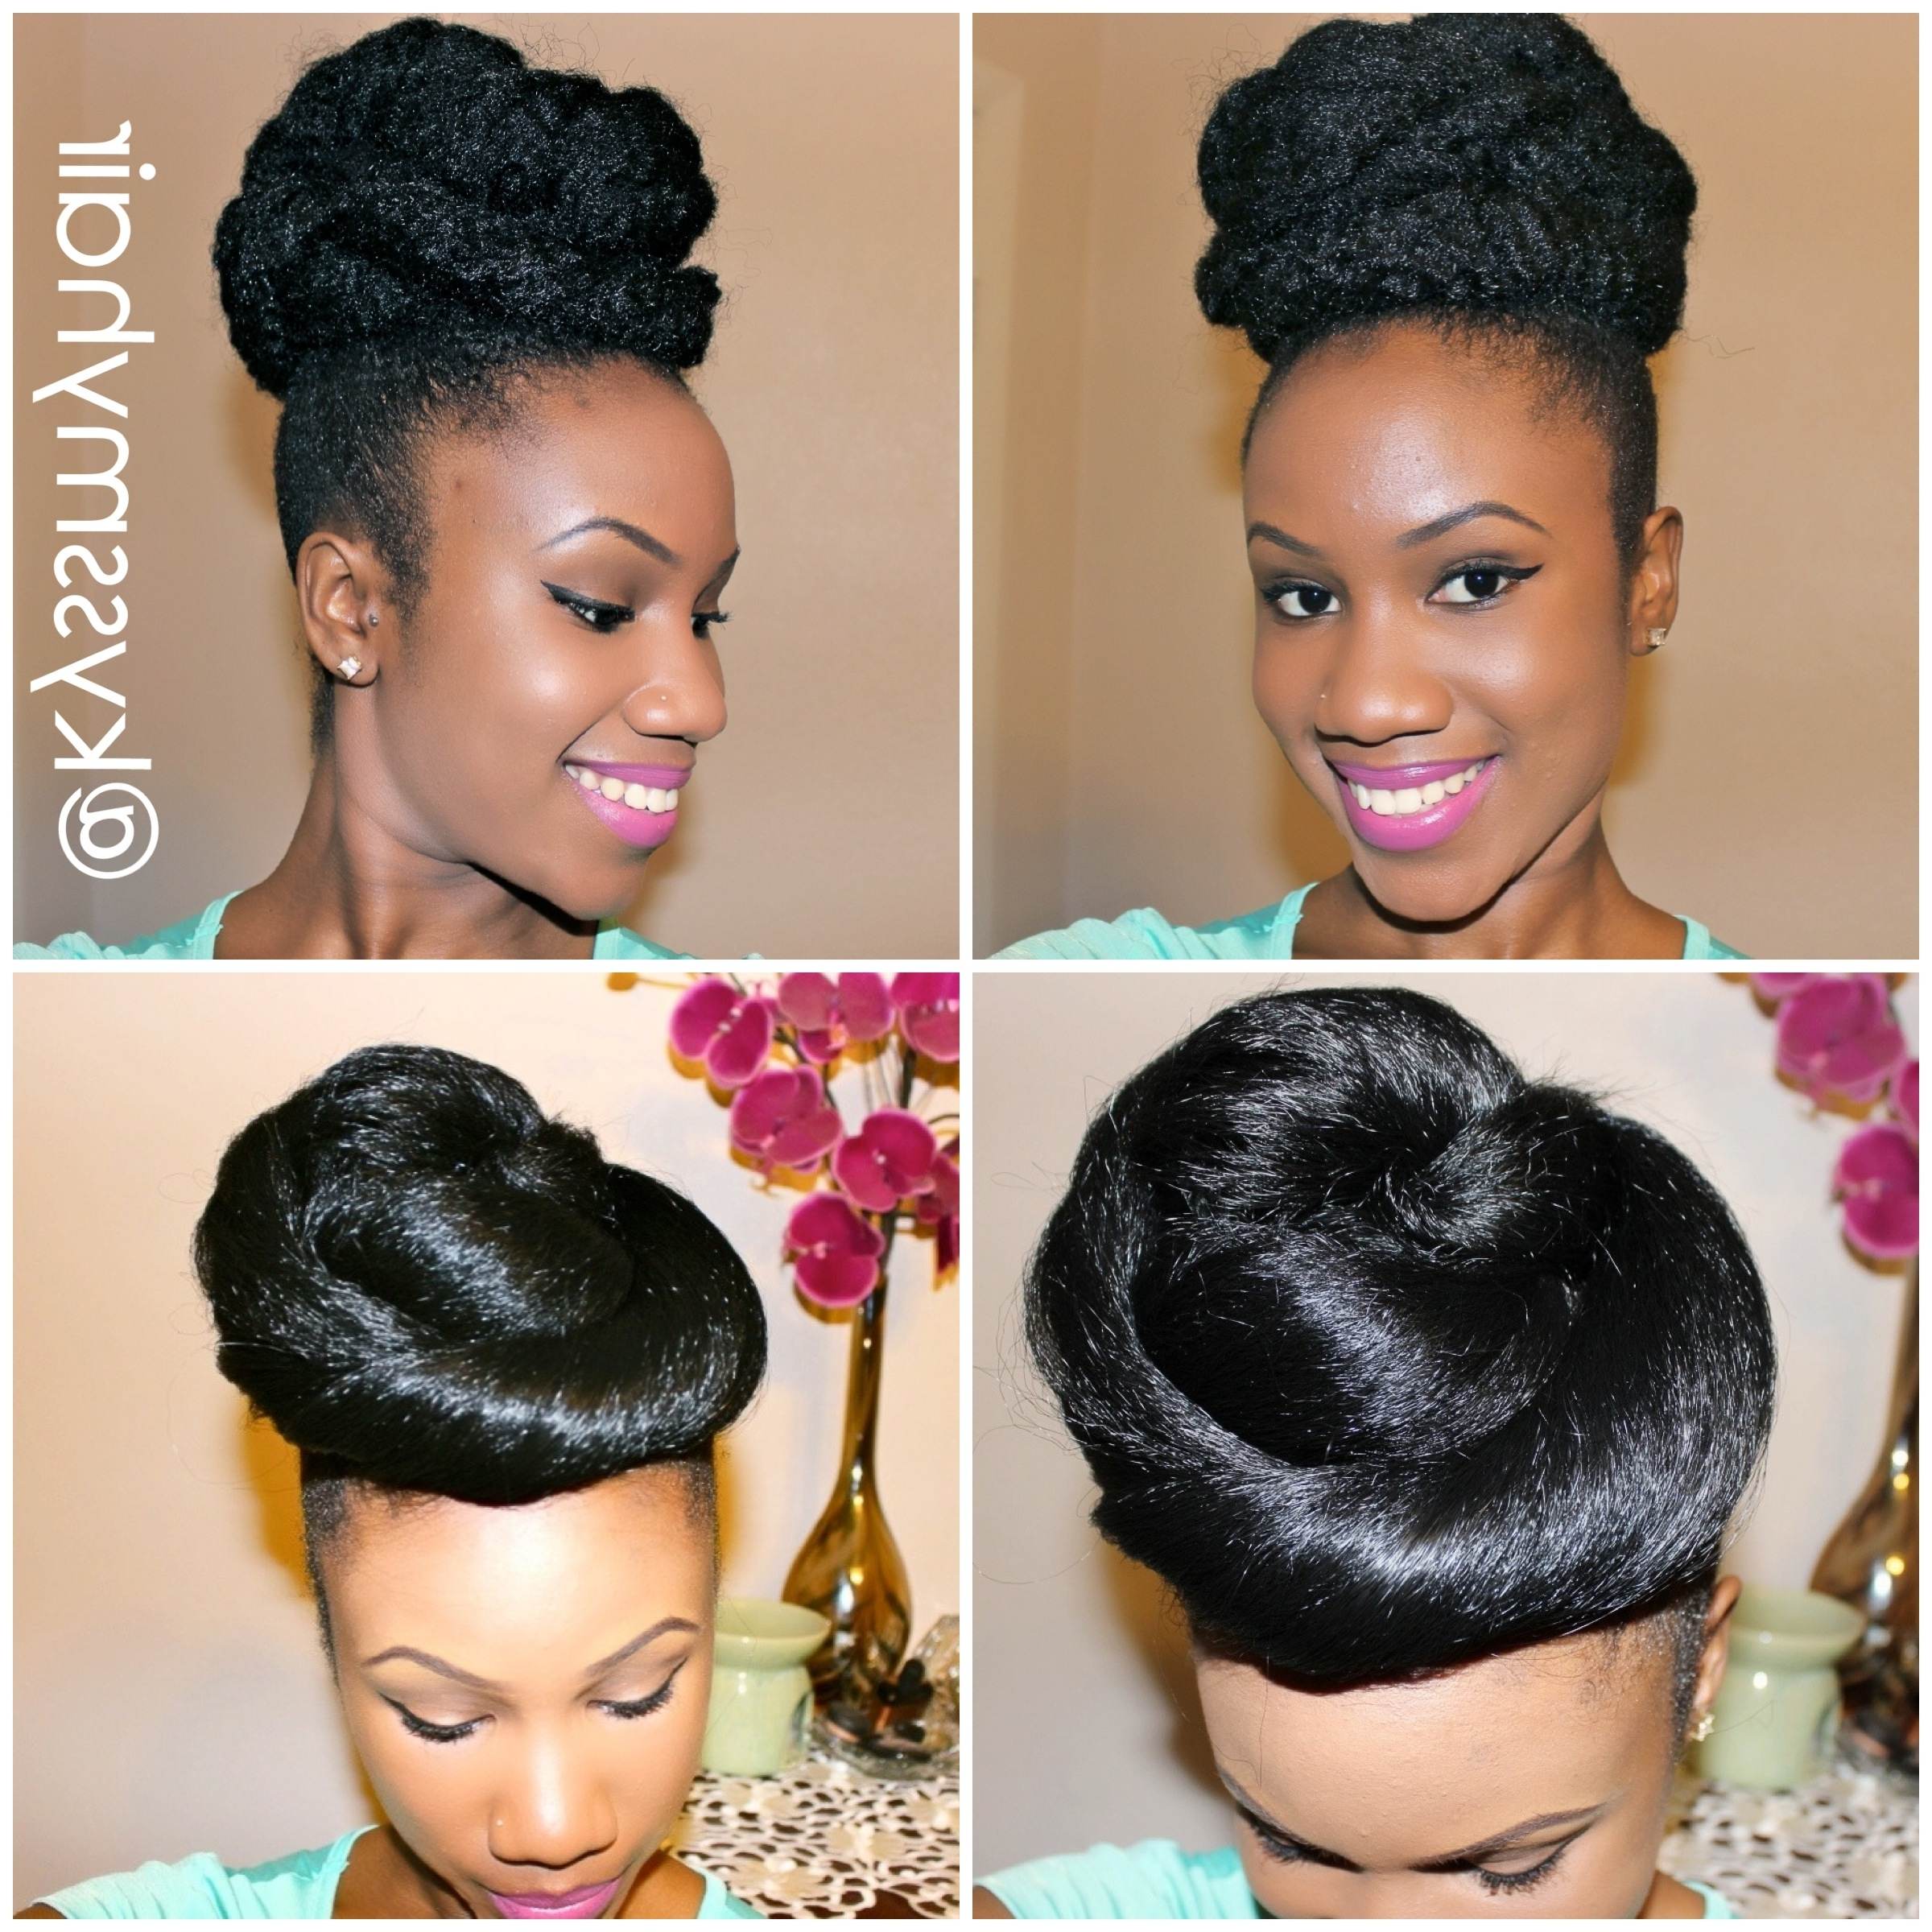 Natural Hairstyle With Braiding Hair Inspirational Natural Intended For Natural Hair Updo Hairstyles With Kanekalon Hair (View 5 of 15)